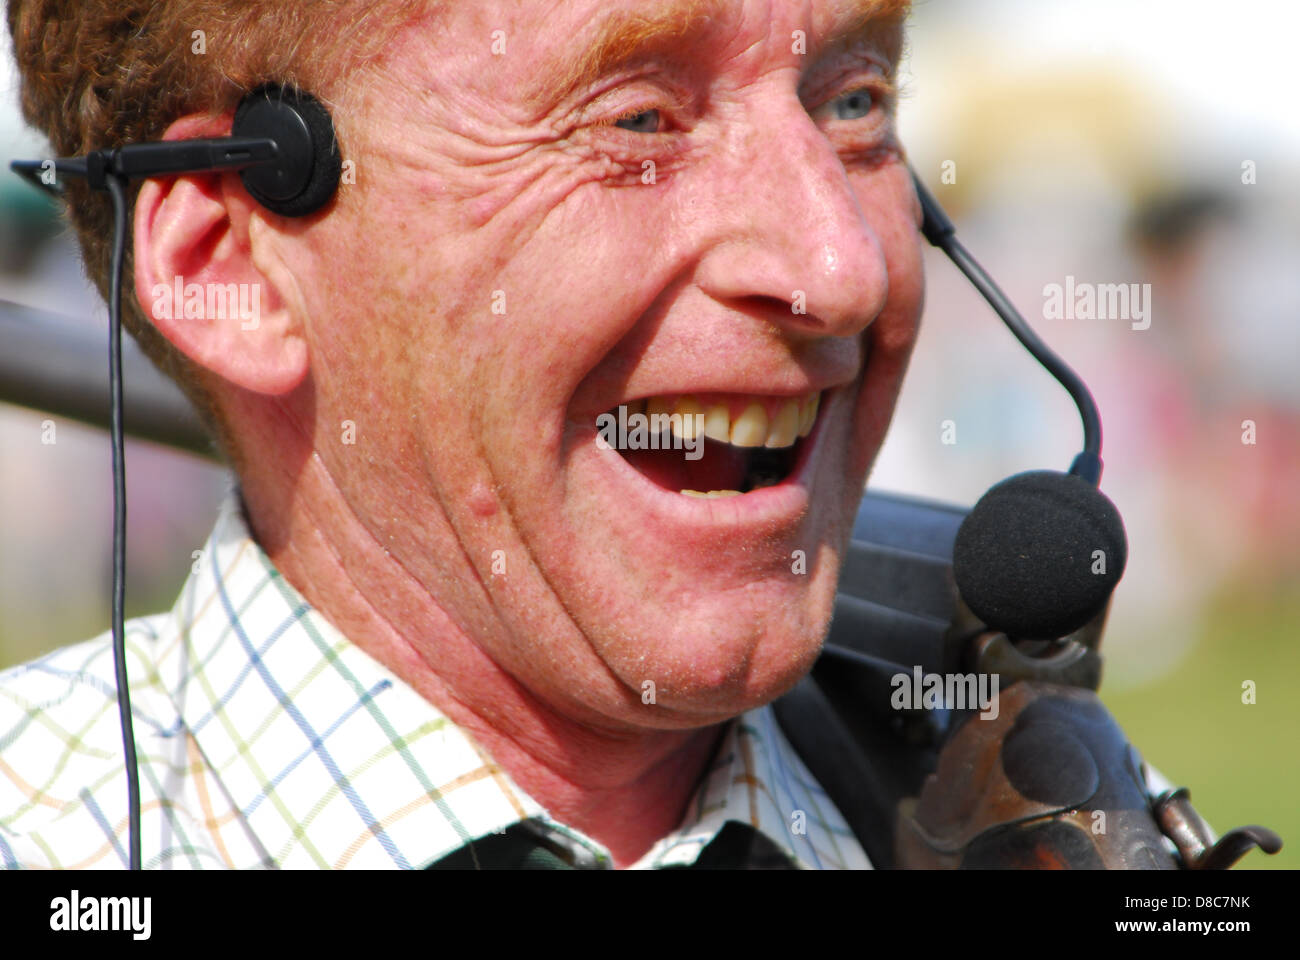 Laughing Commentator - Stock Image